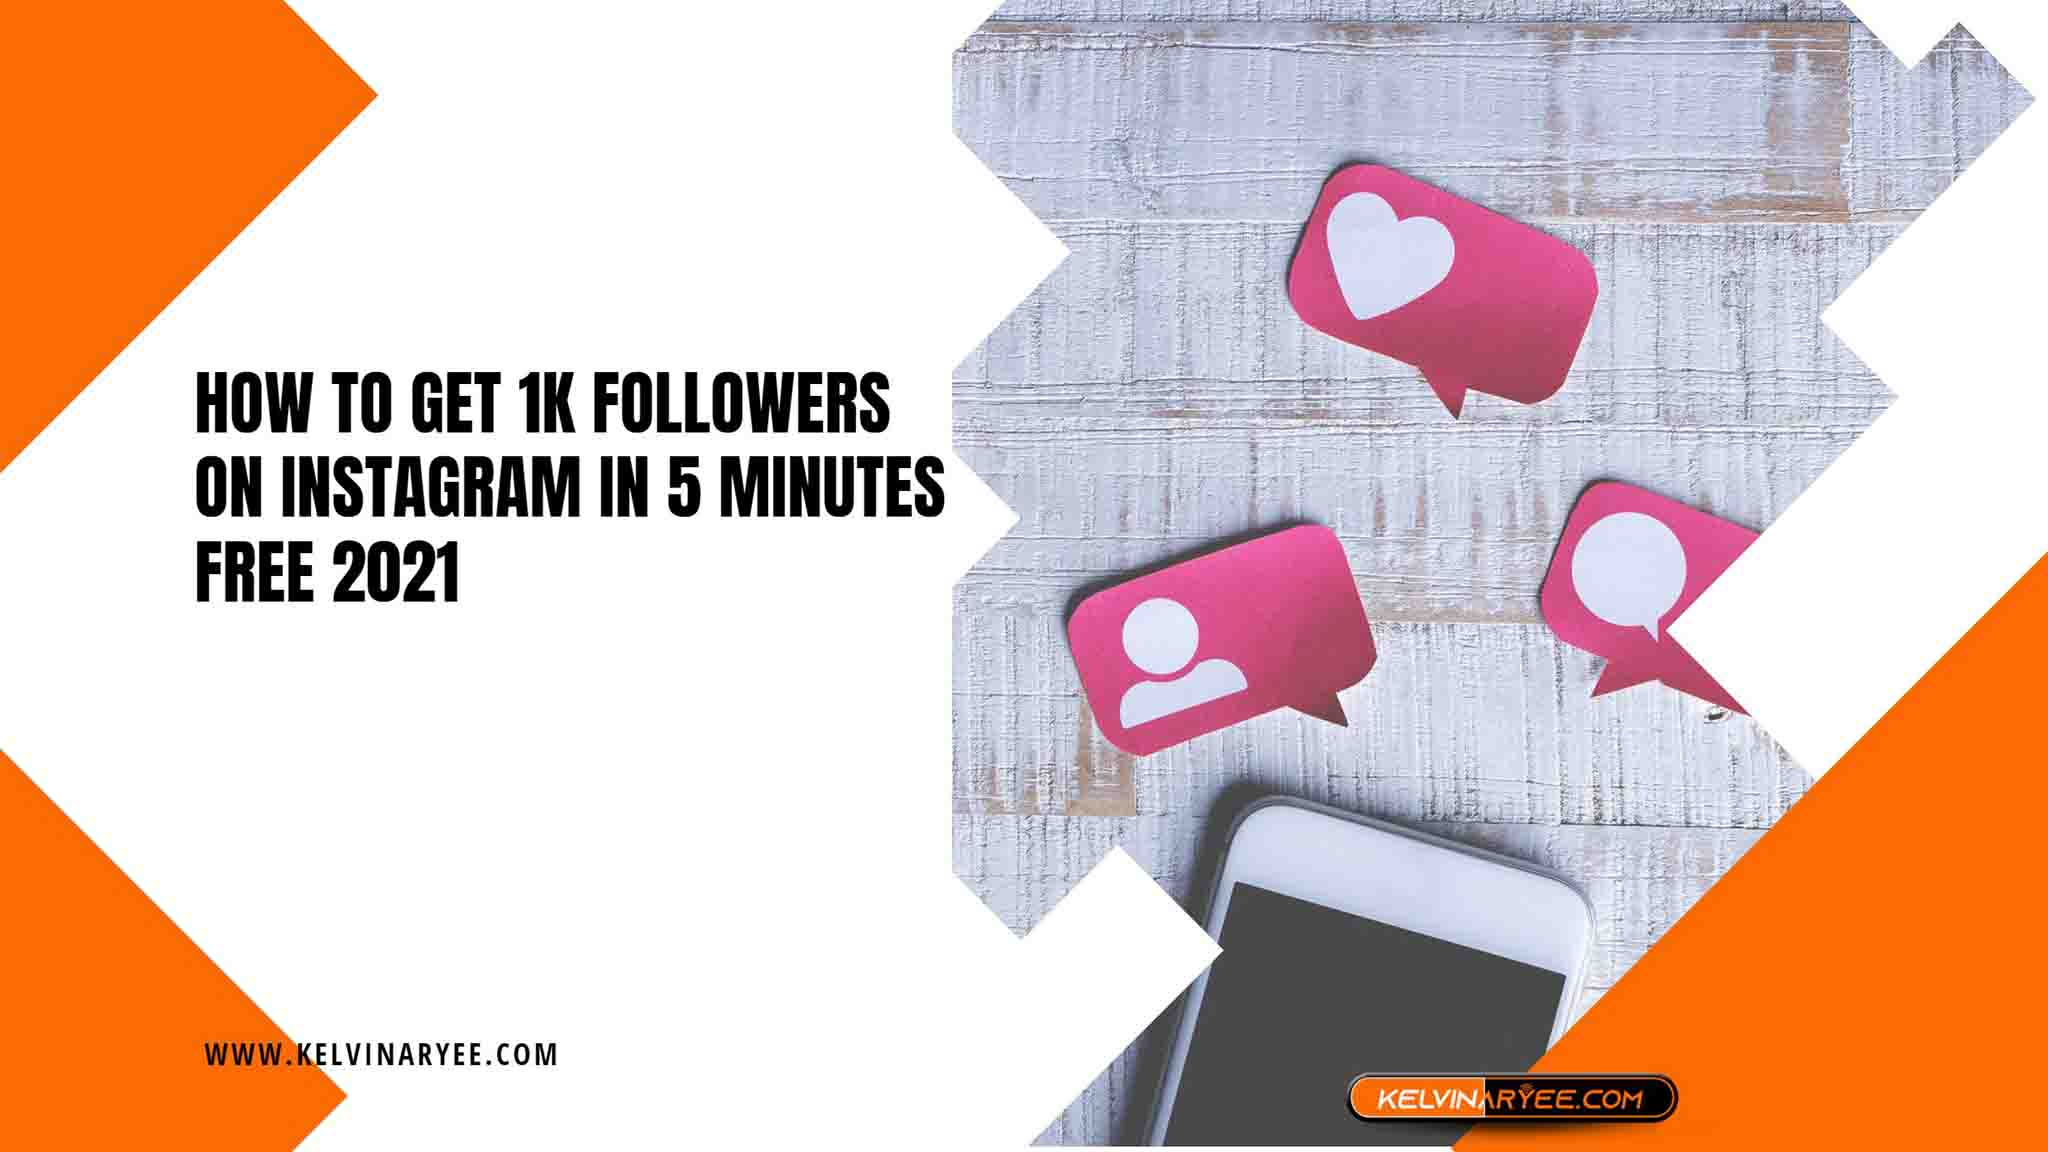 You are currently viewing How To Get 1k Followers on Instagram in 5 Minutes Free 2021